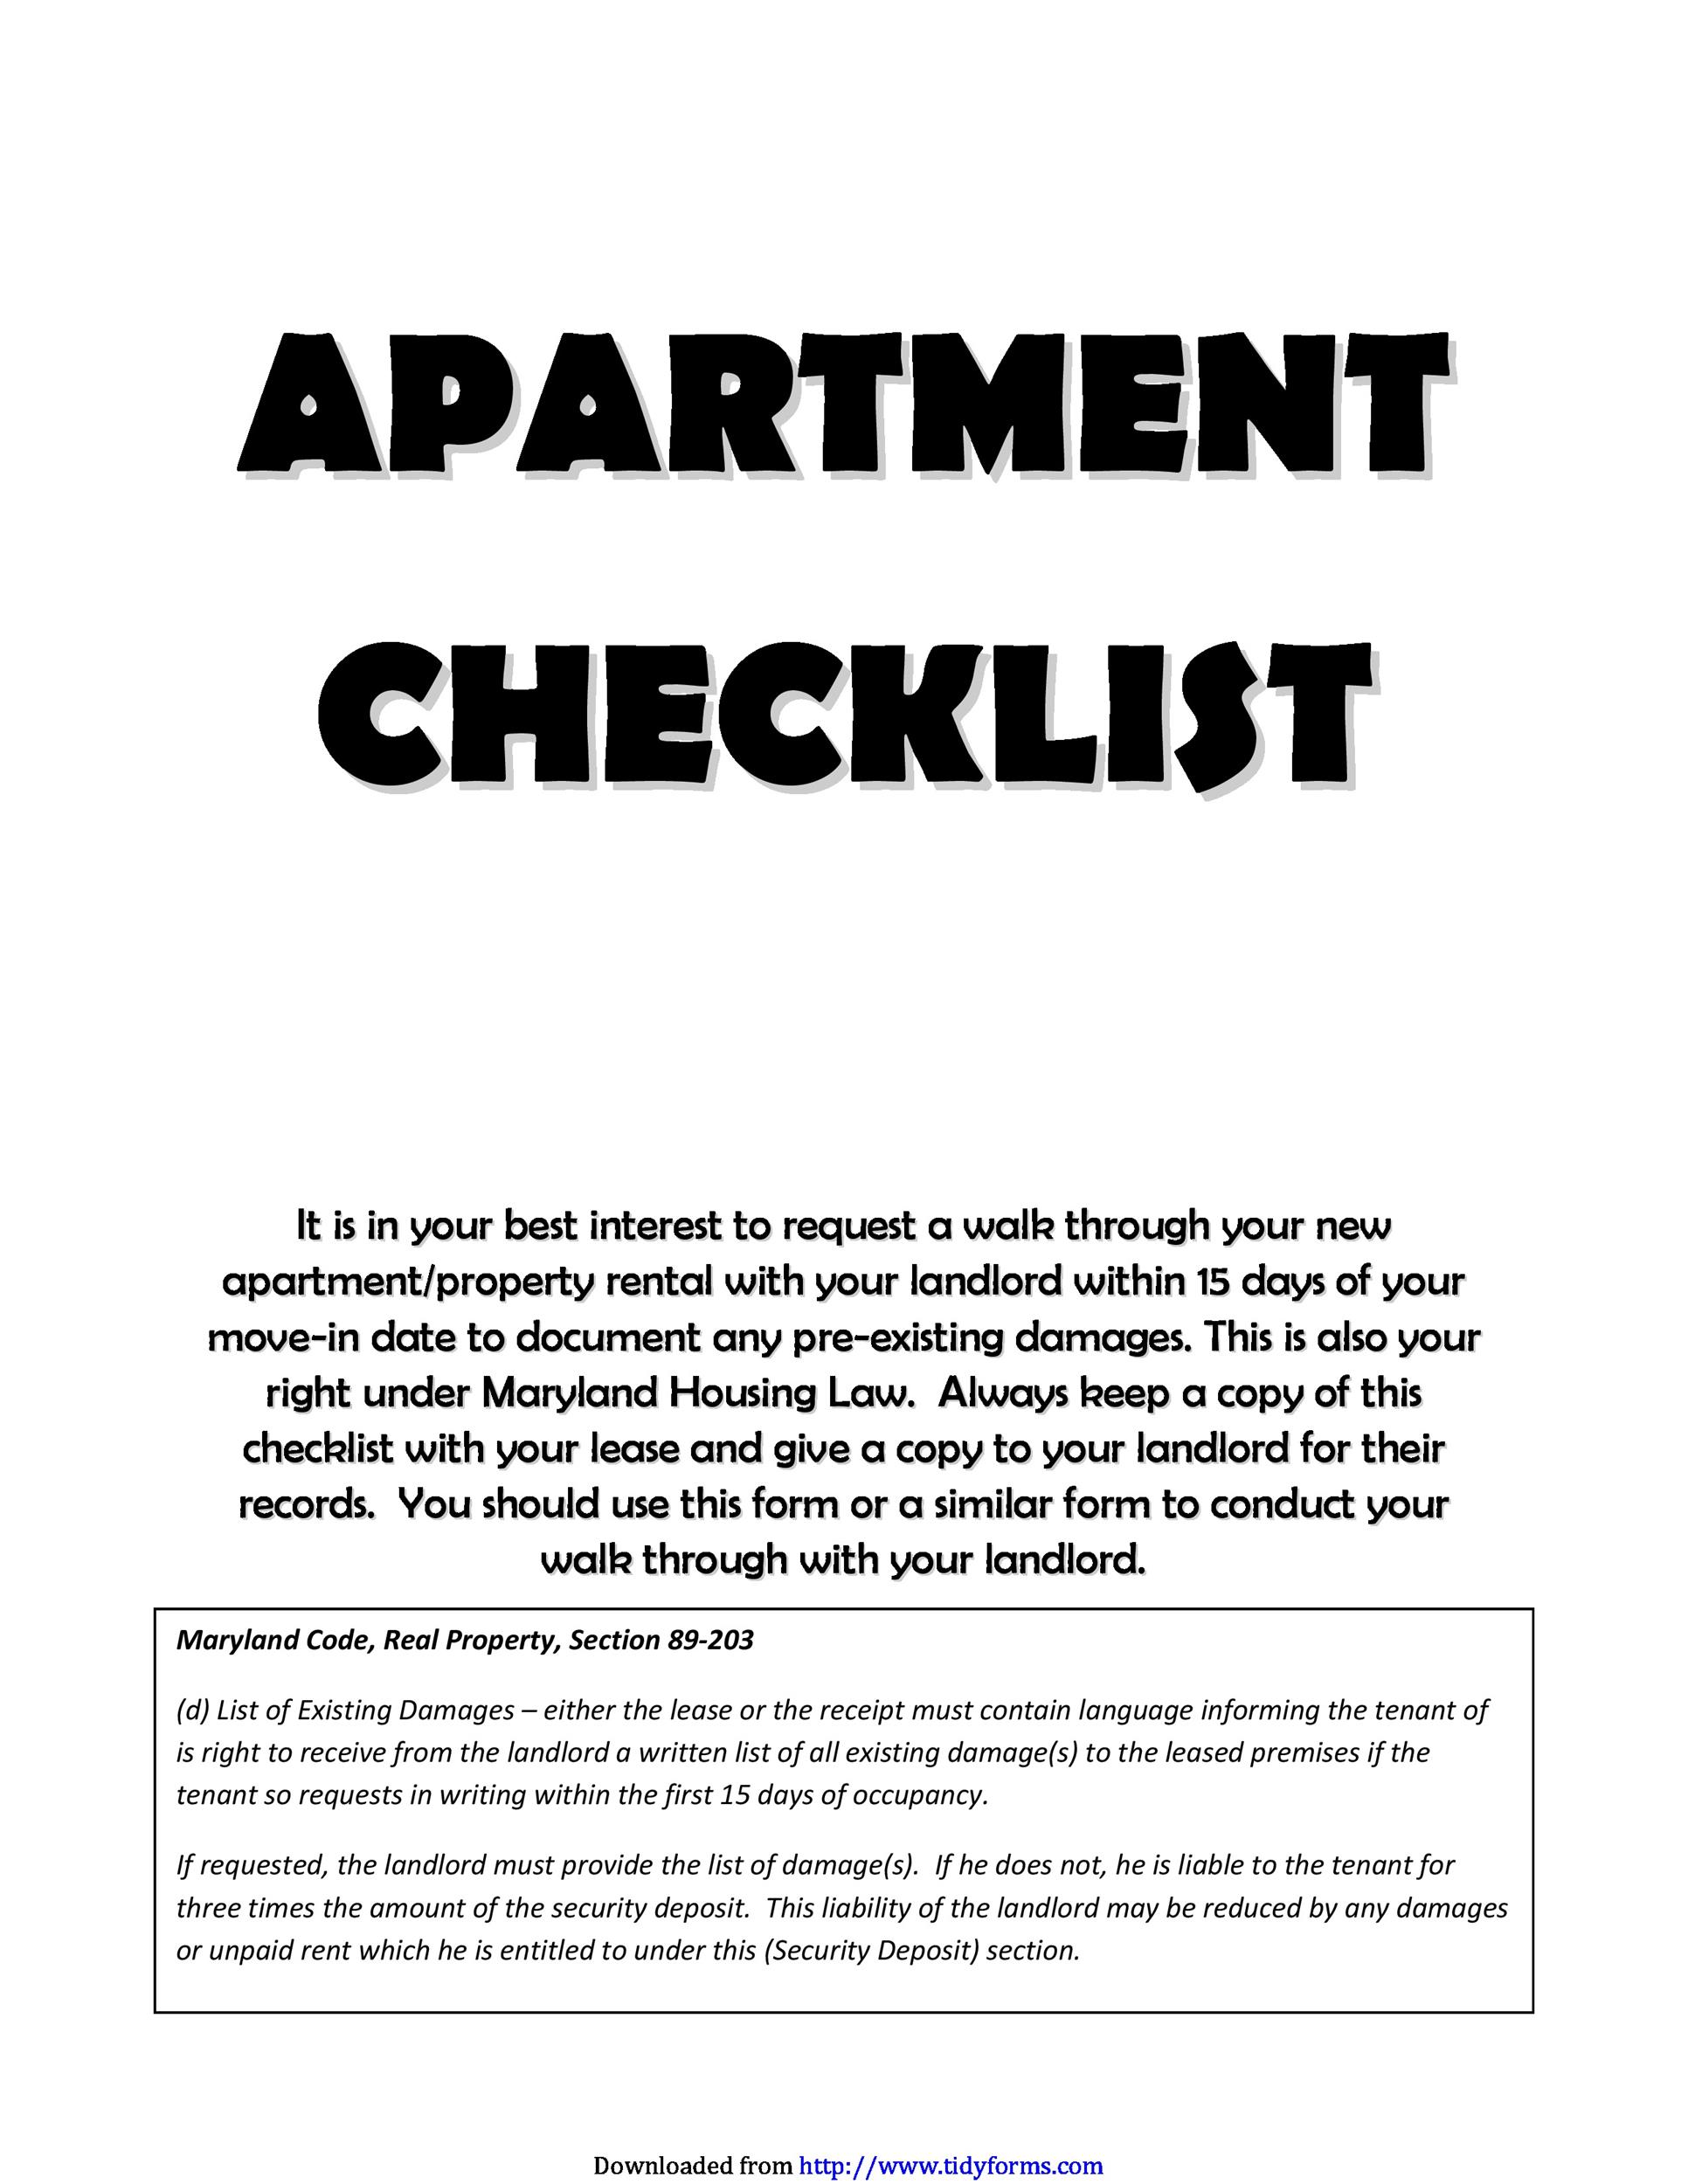 first new apartment checklist 40 essential templates template lab